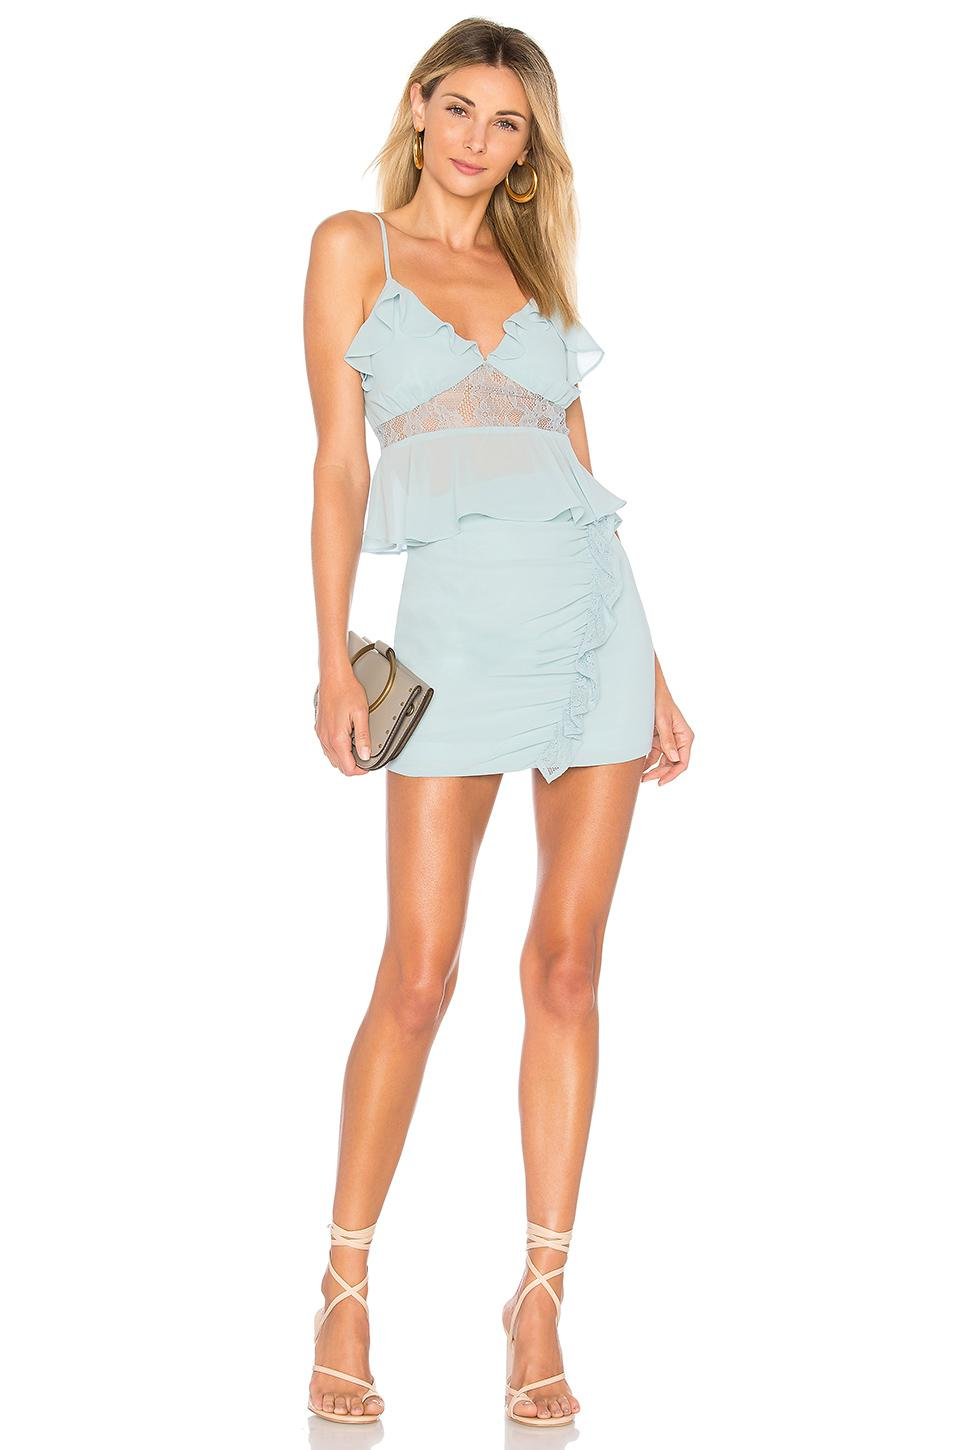 Lovers + Friends Synthetic Mik Top in Blue